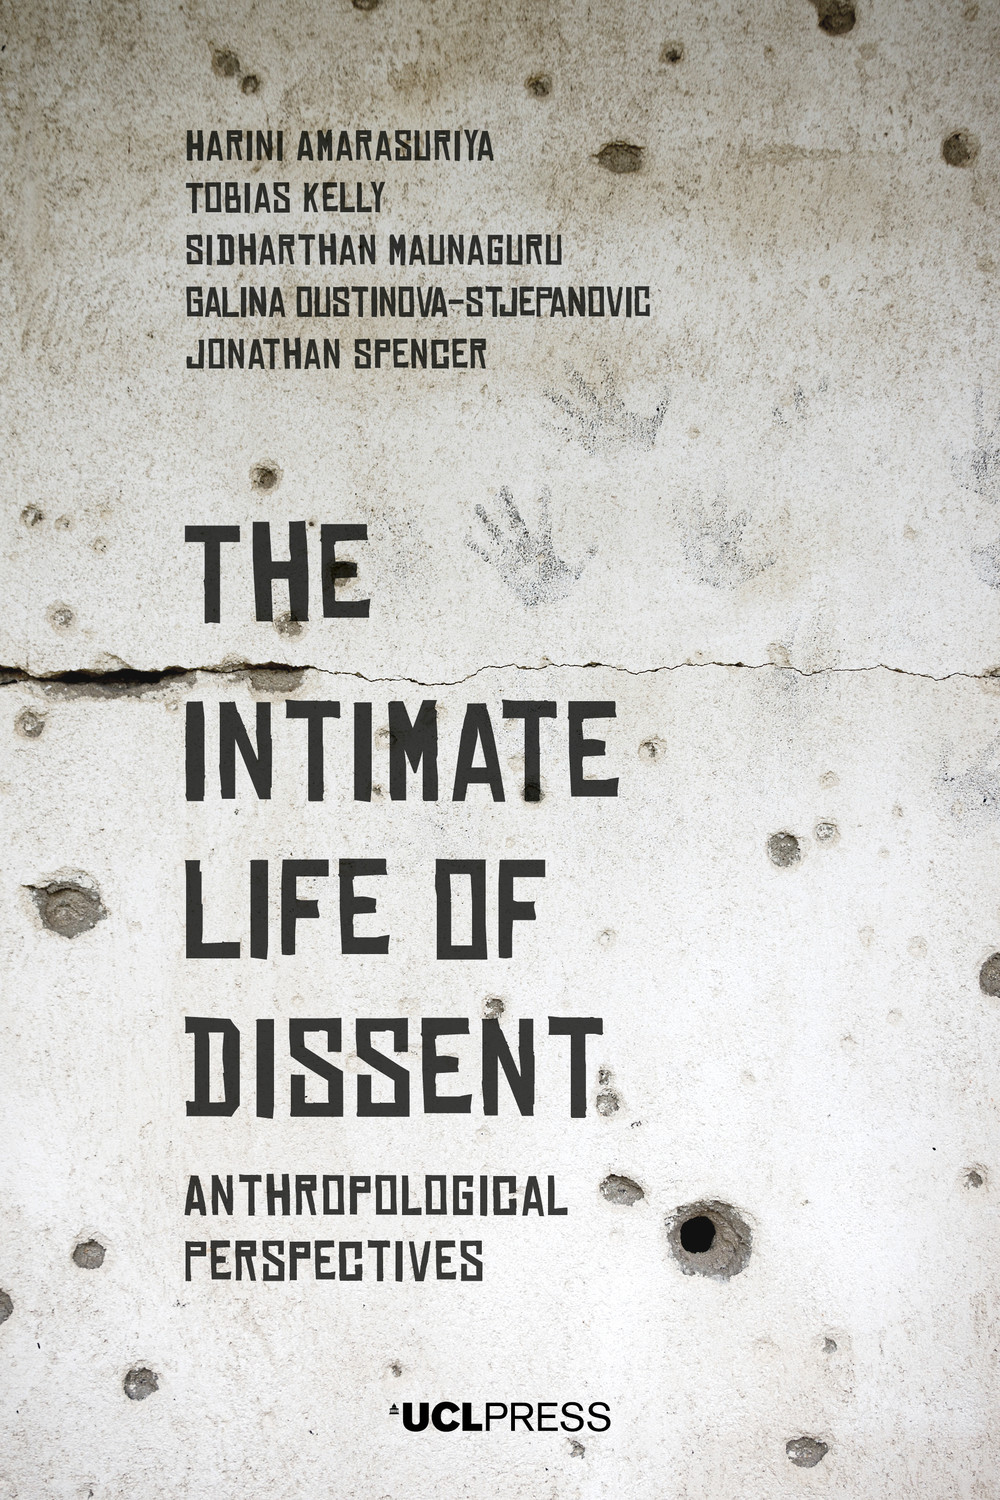 The Intimate Life of Dissent